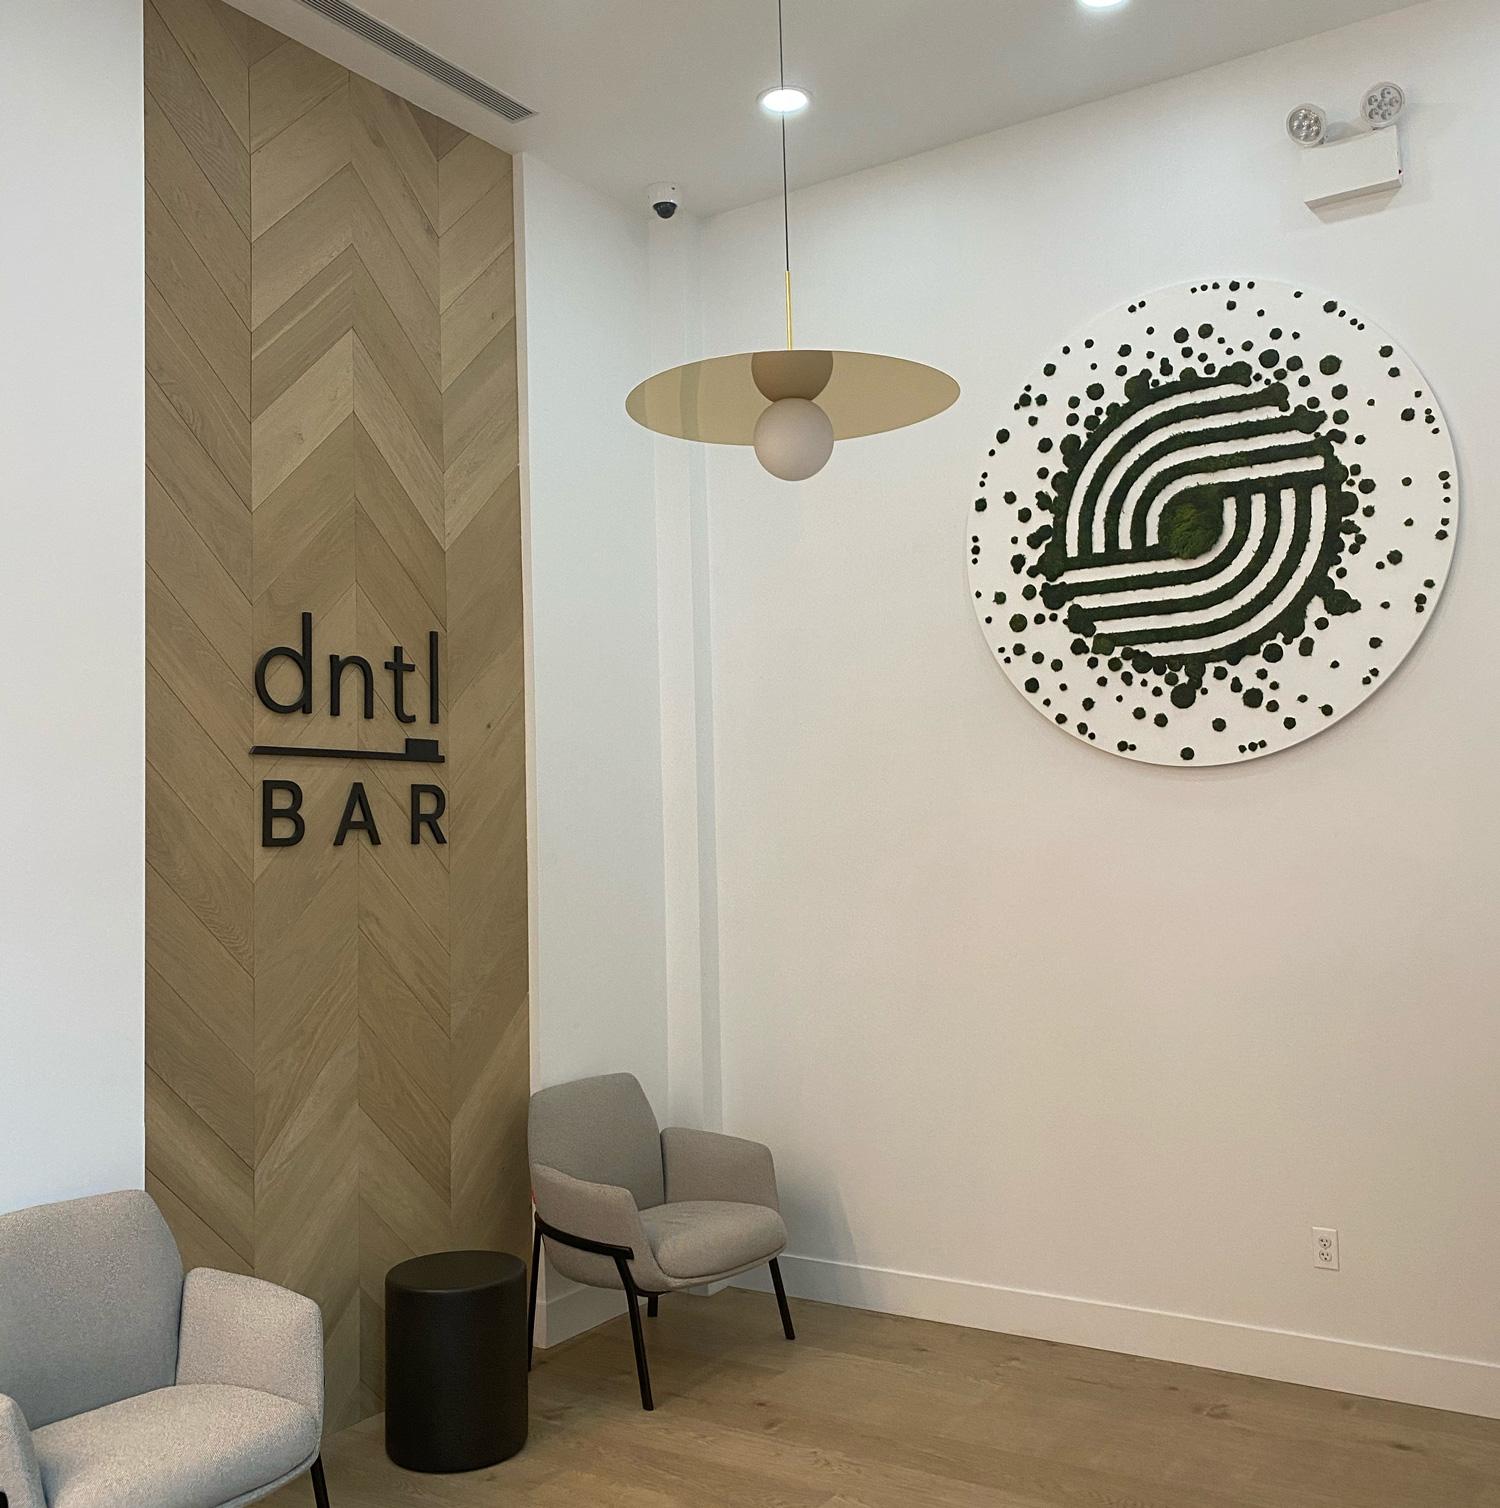 dntl bar Union Square location lobby with dntl bar logo sign and artwork on walls